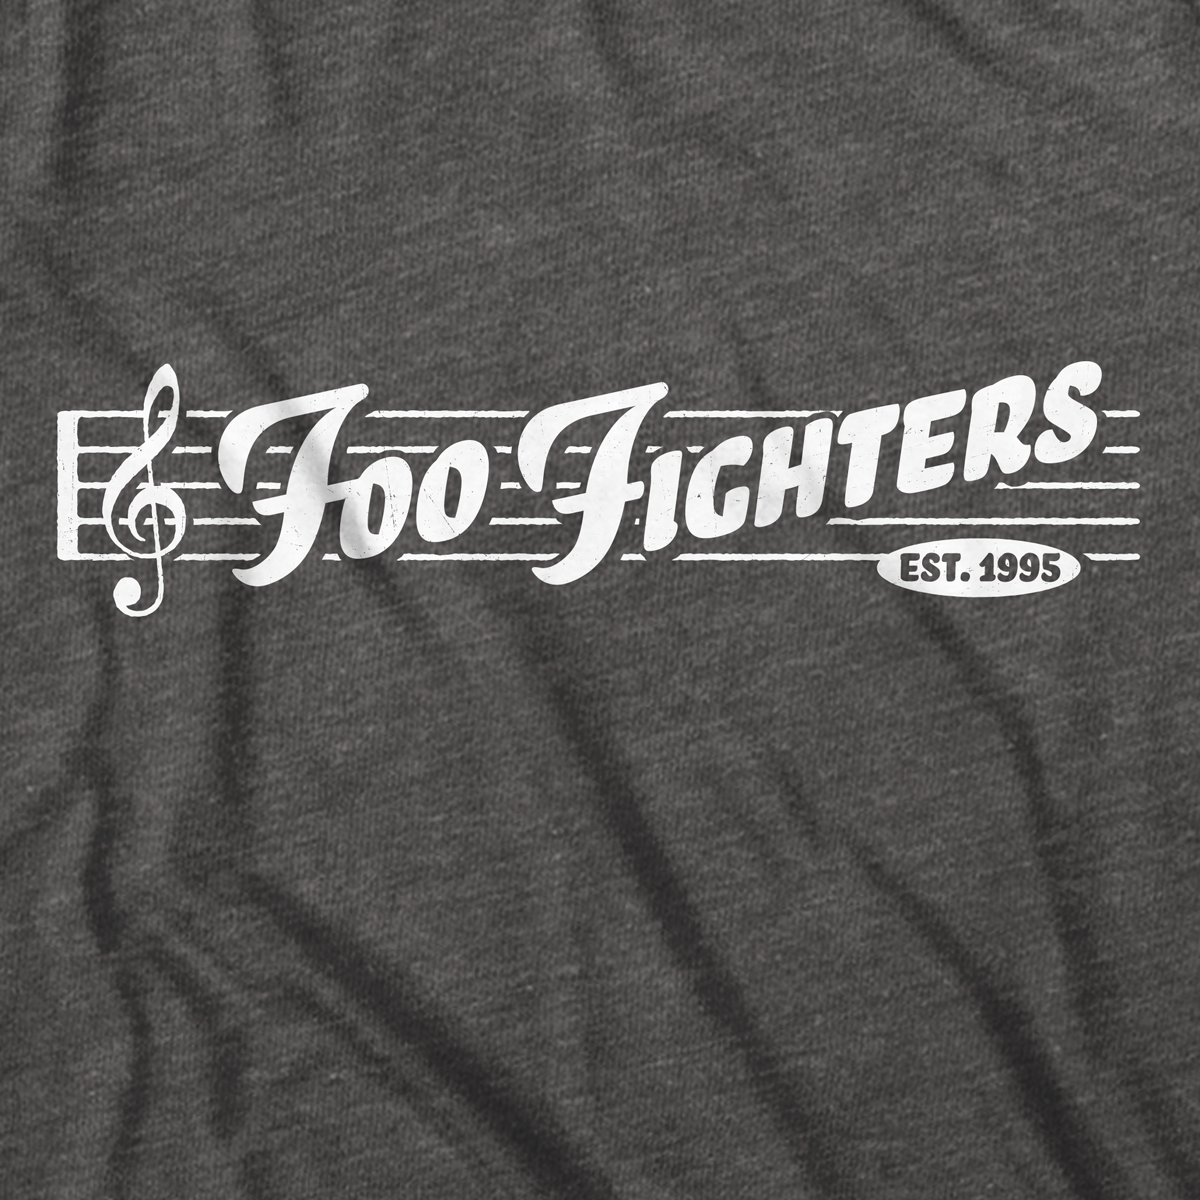 One color white print on a dark heather gray shirt.